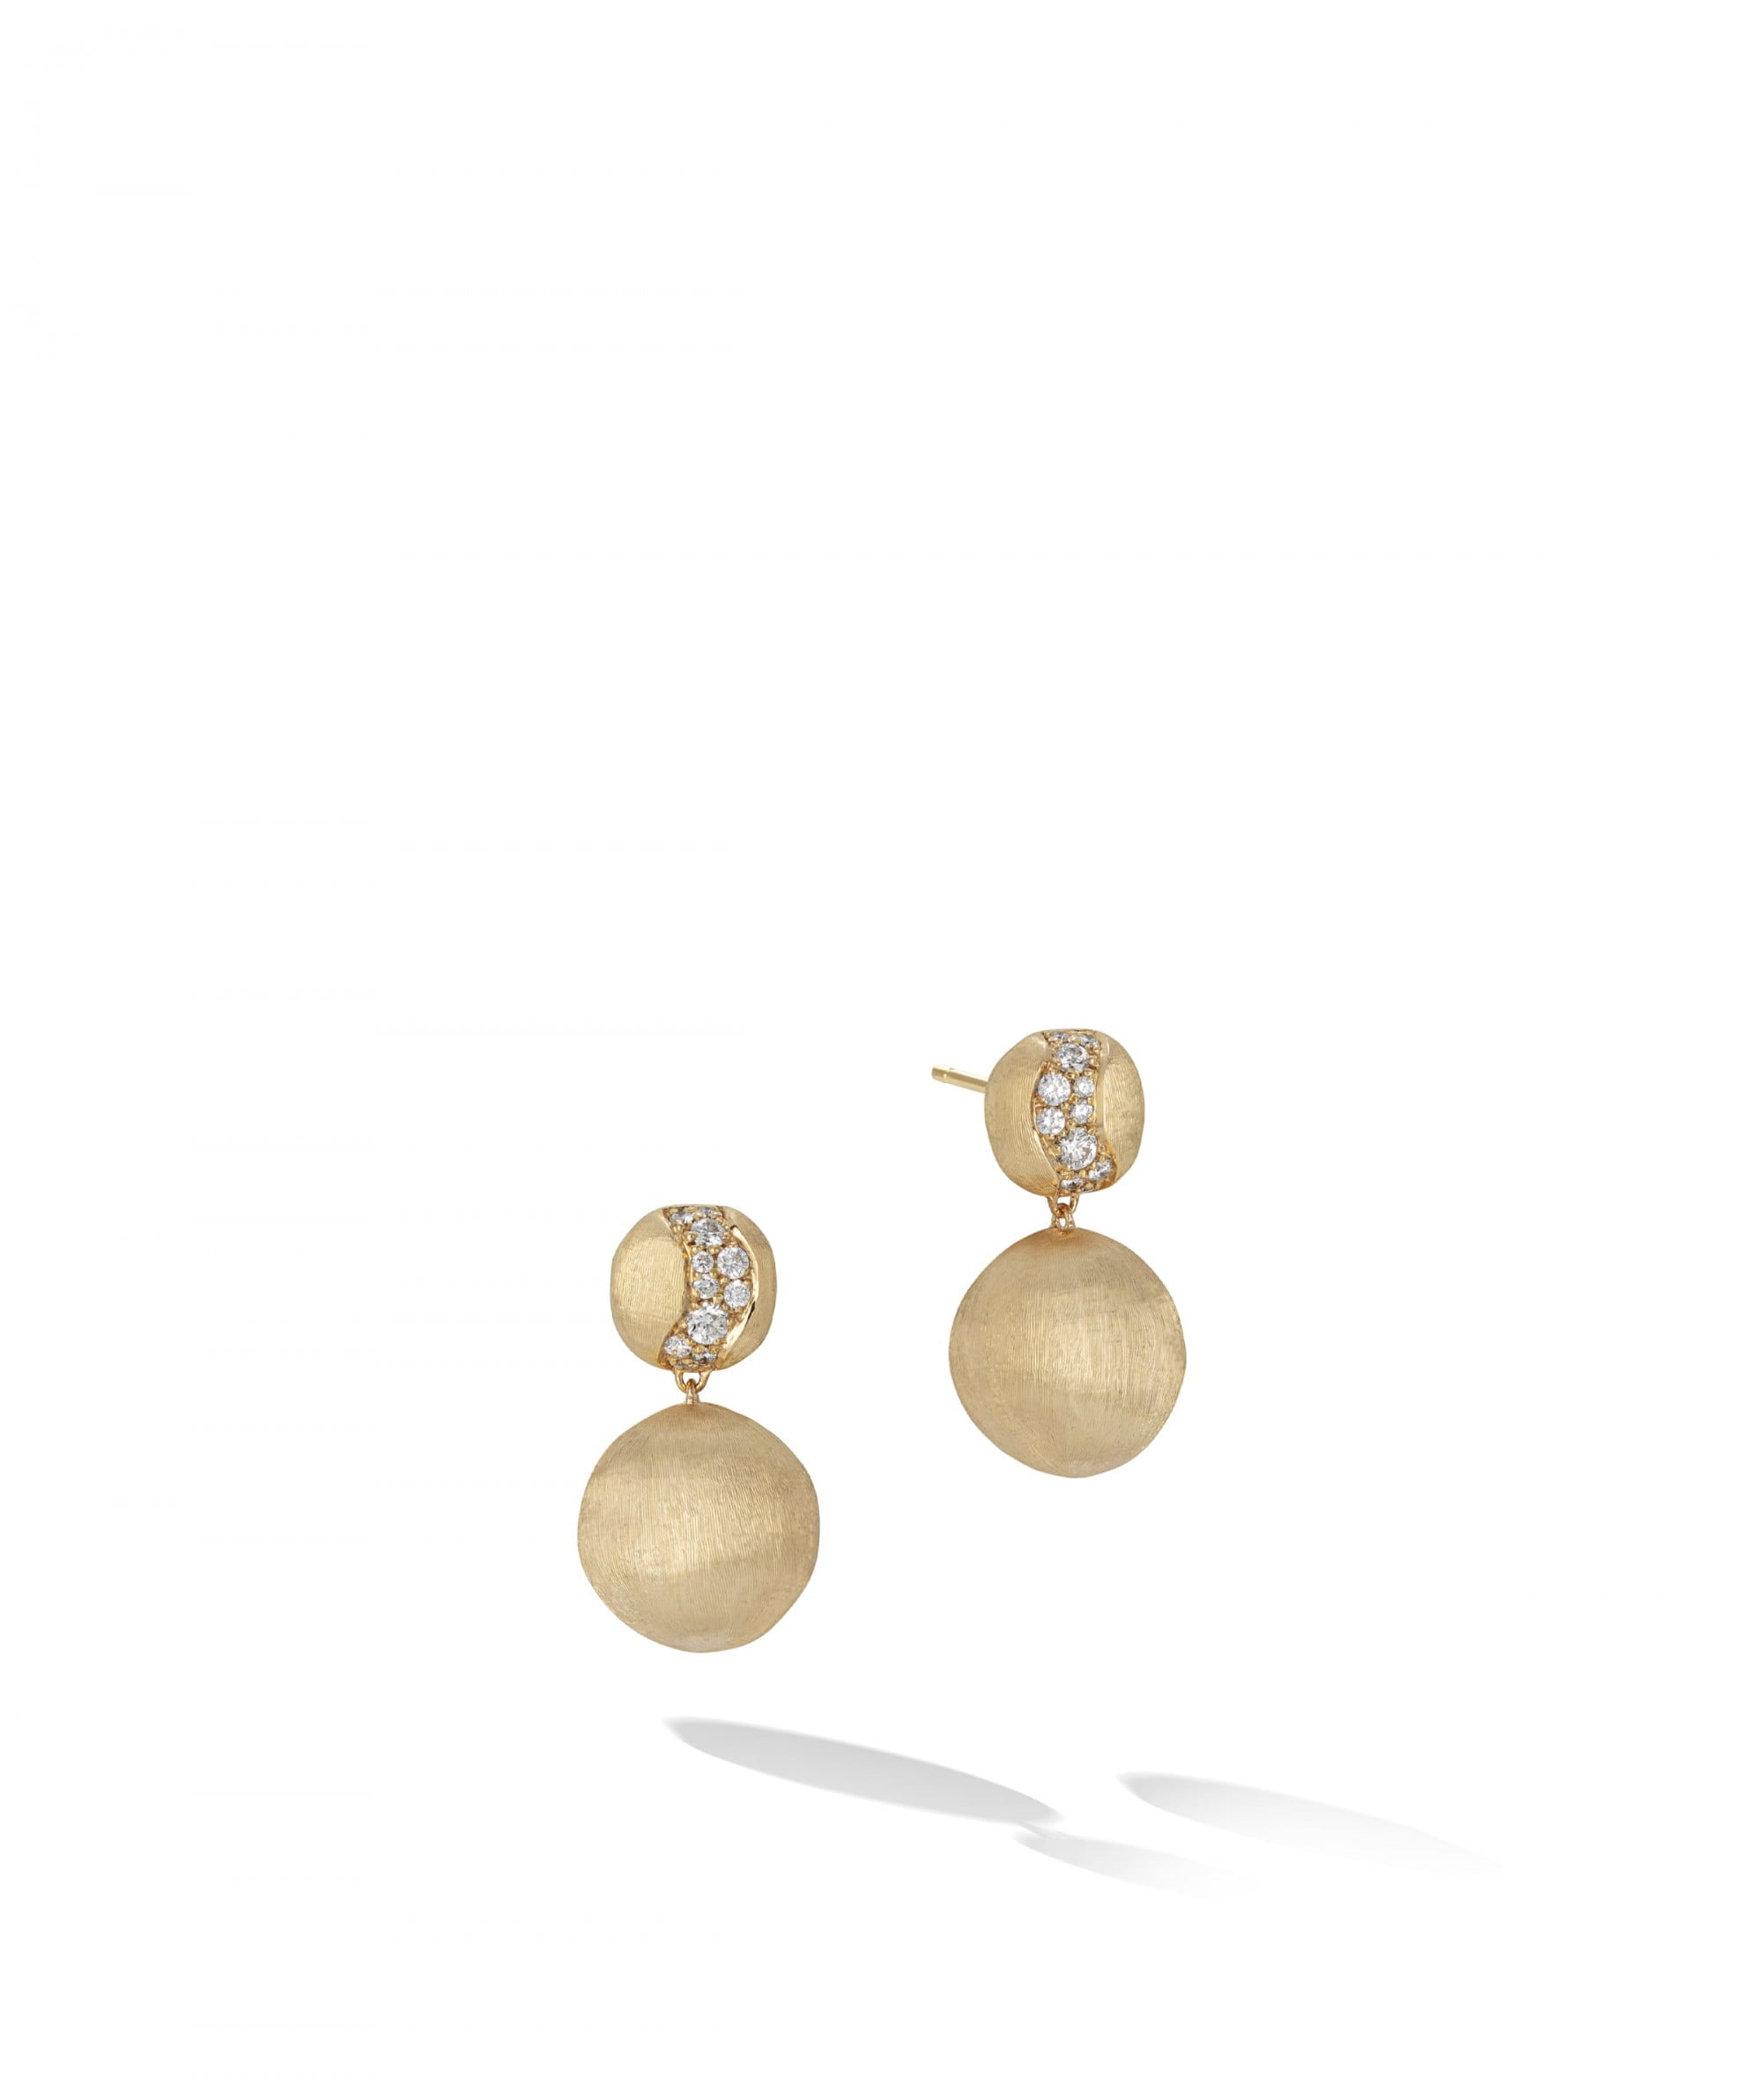 Africa Constellation Earrings in 18k Yellow Gold with Diamonds 2 Drop Chandelier - Orsini Jewellers NZ